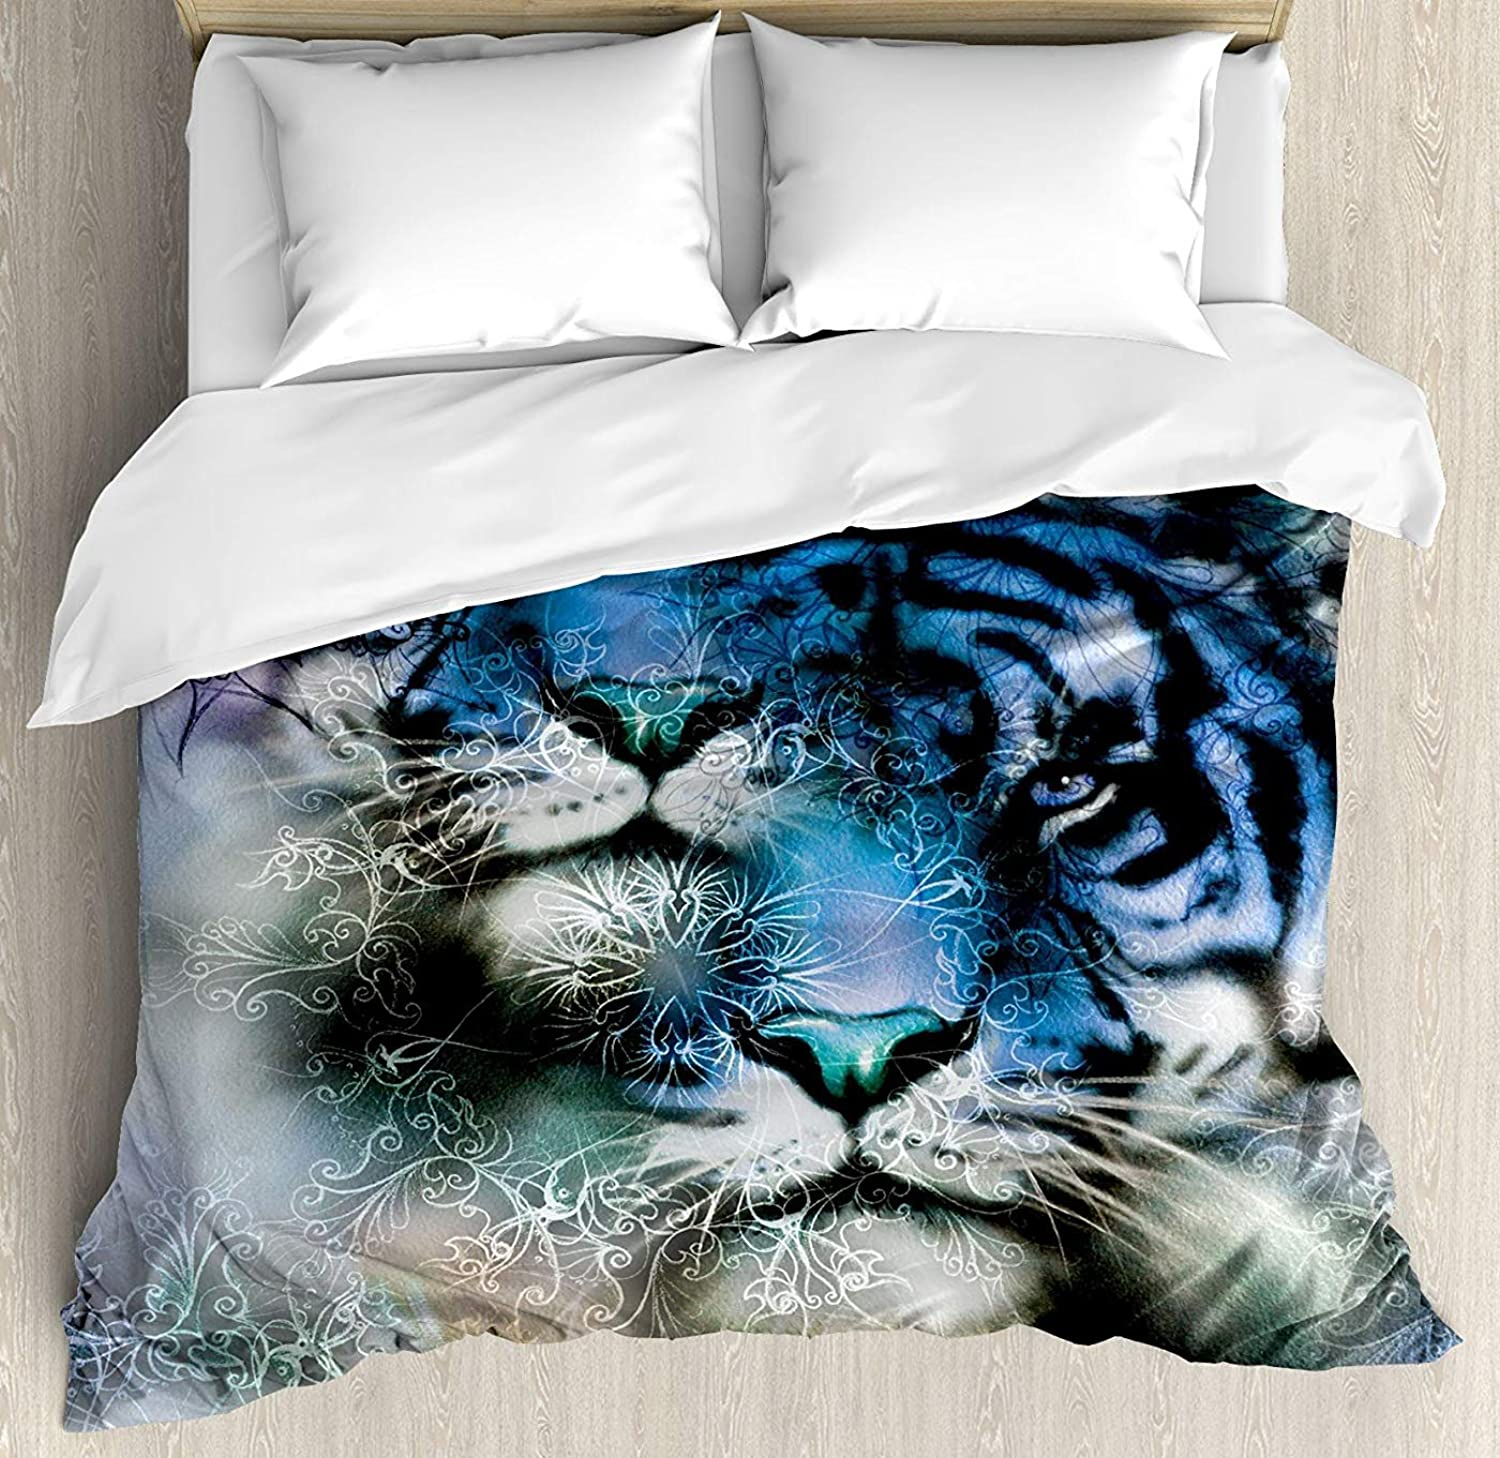 Animal Duvet Cover Set Queen Size, Two Tiger Safari Cat African Wild Furious Life Big Animals Artwork Print,Lightweight Microfiber Duvet Cover Sets, bluee Black and White